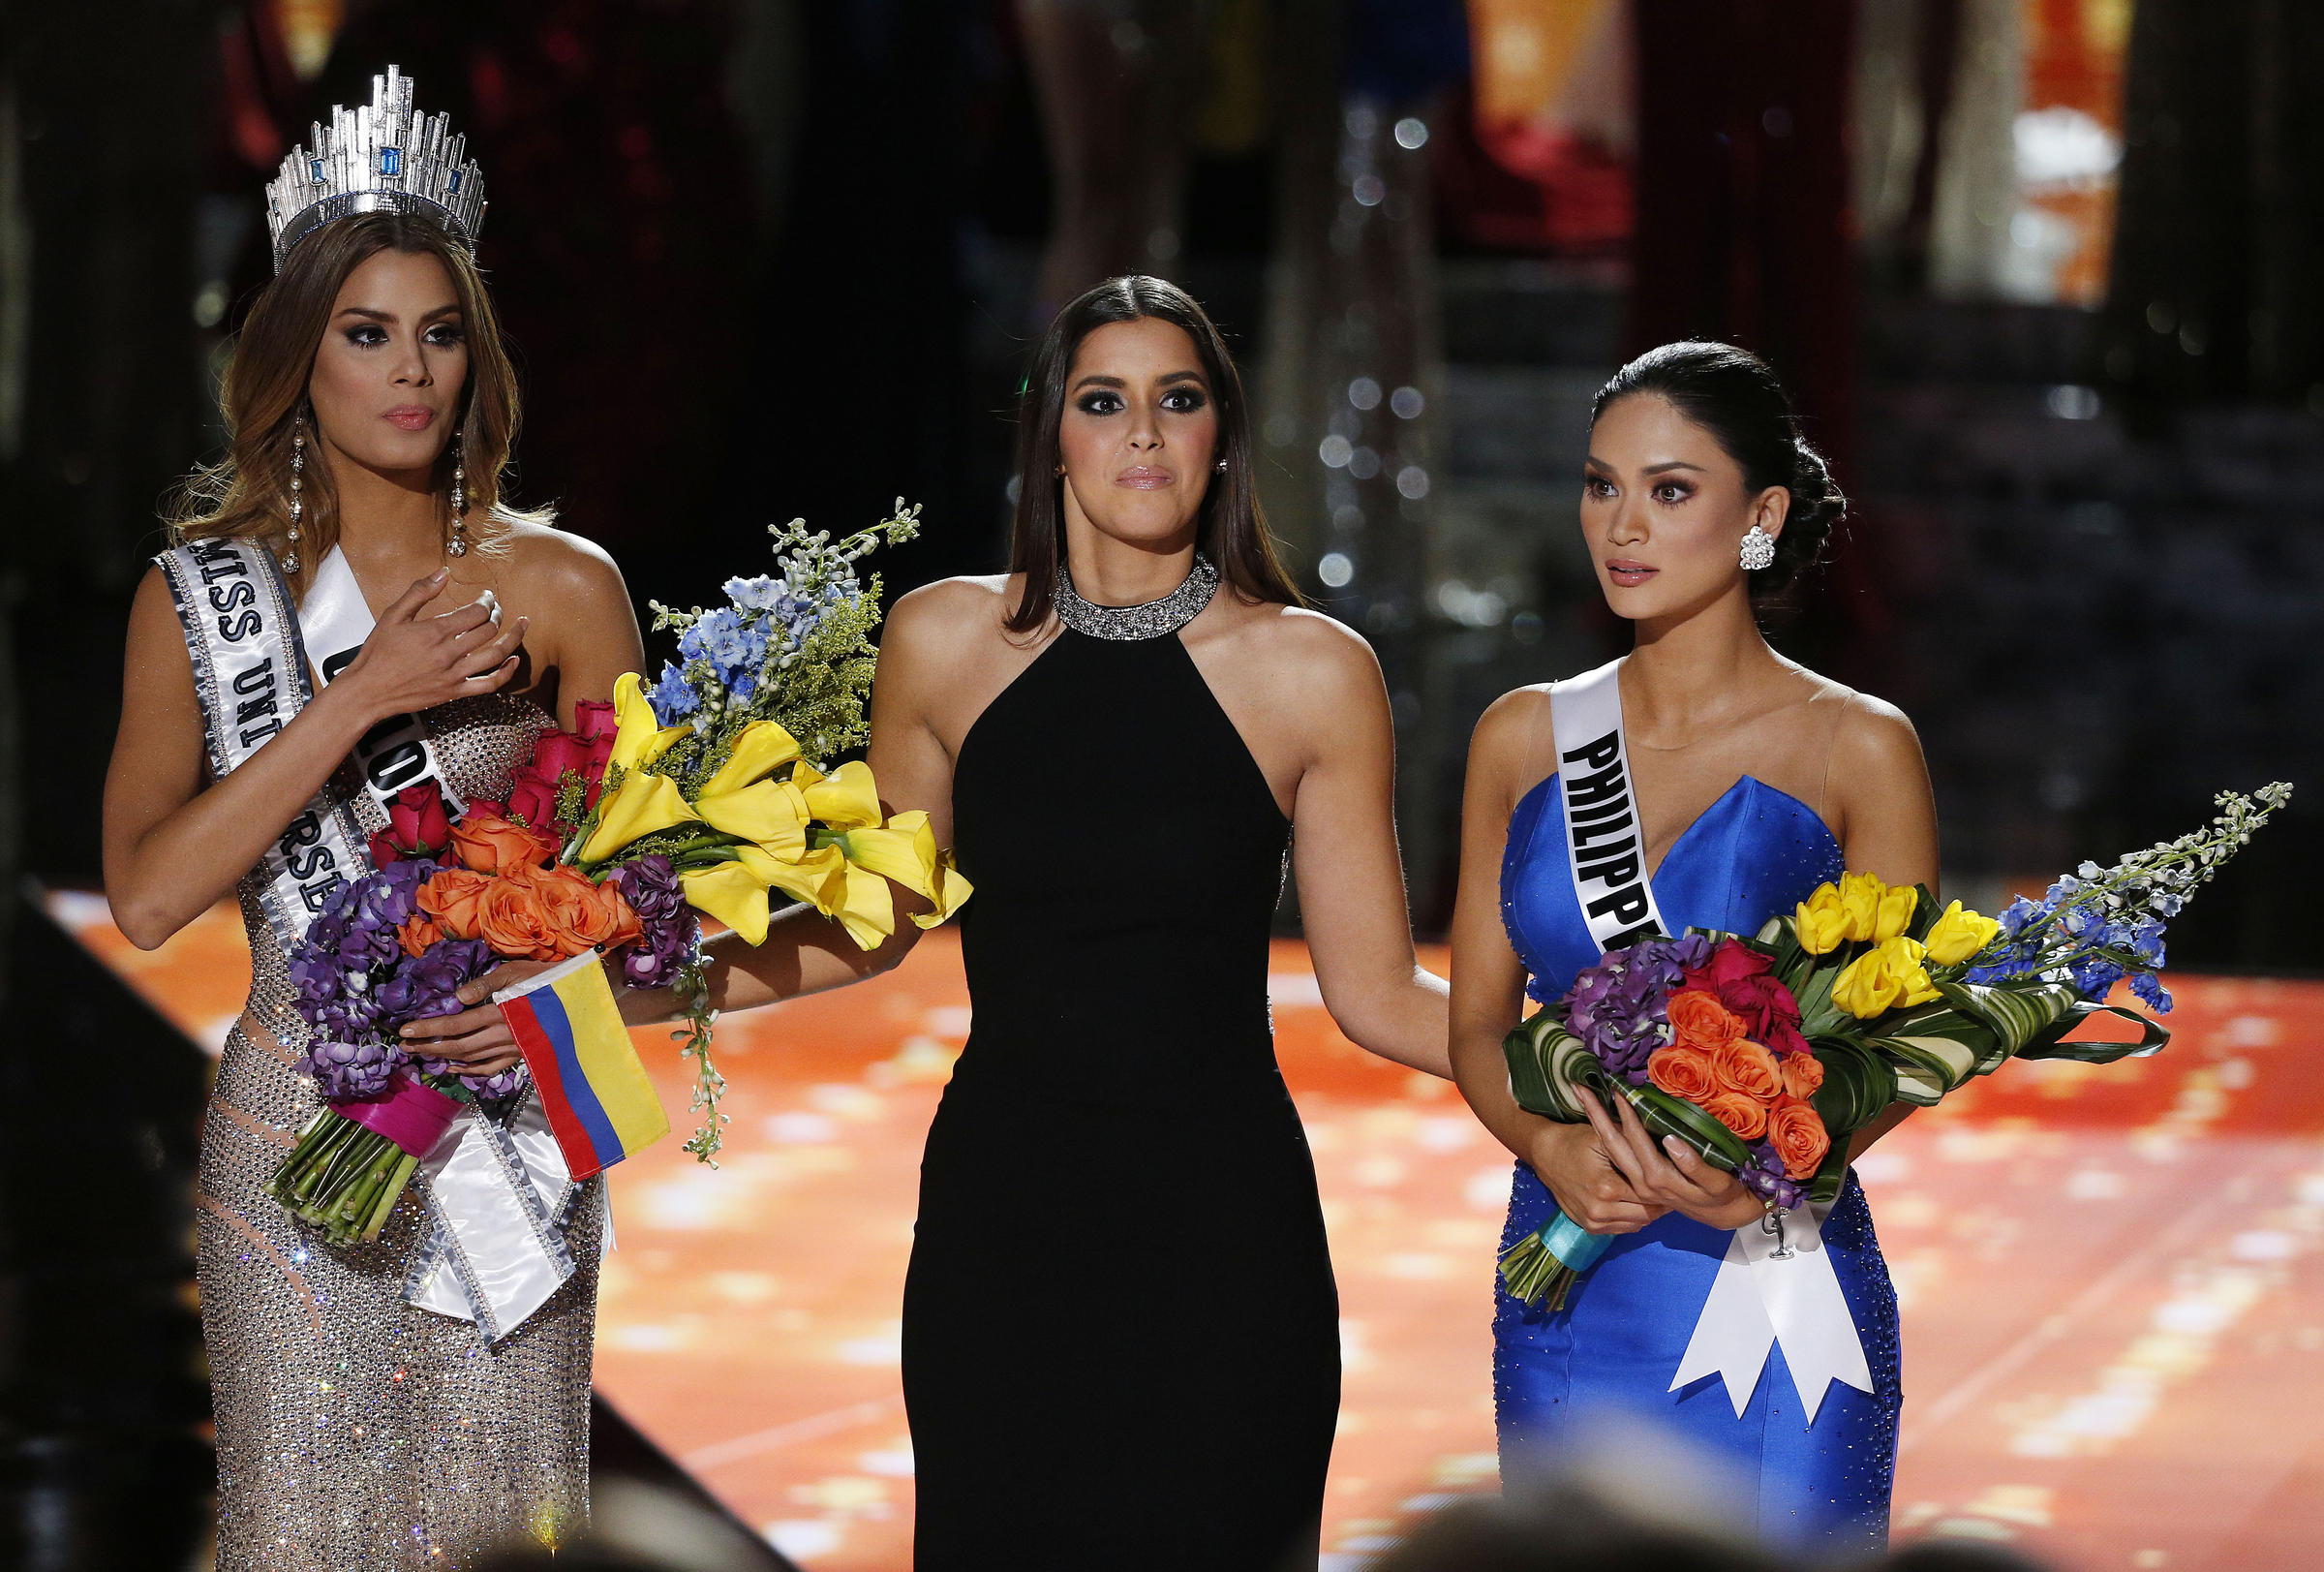 94705aa8f2 Former Miss Universe Paulina Vega, center, reacts before taking away the  flowers, crown and sash from Miss Colombia Ariadna Gutierrez, left, before  giving ...